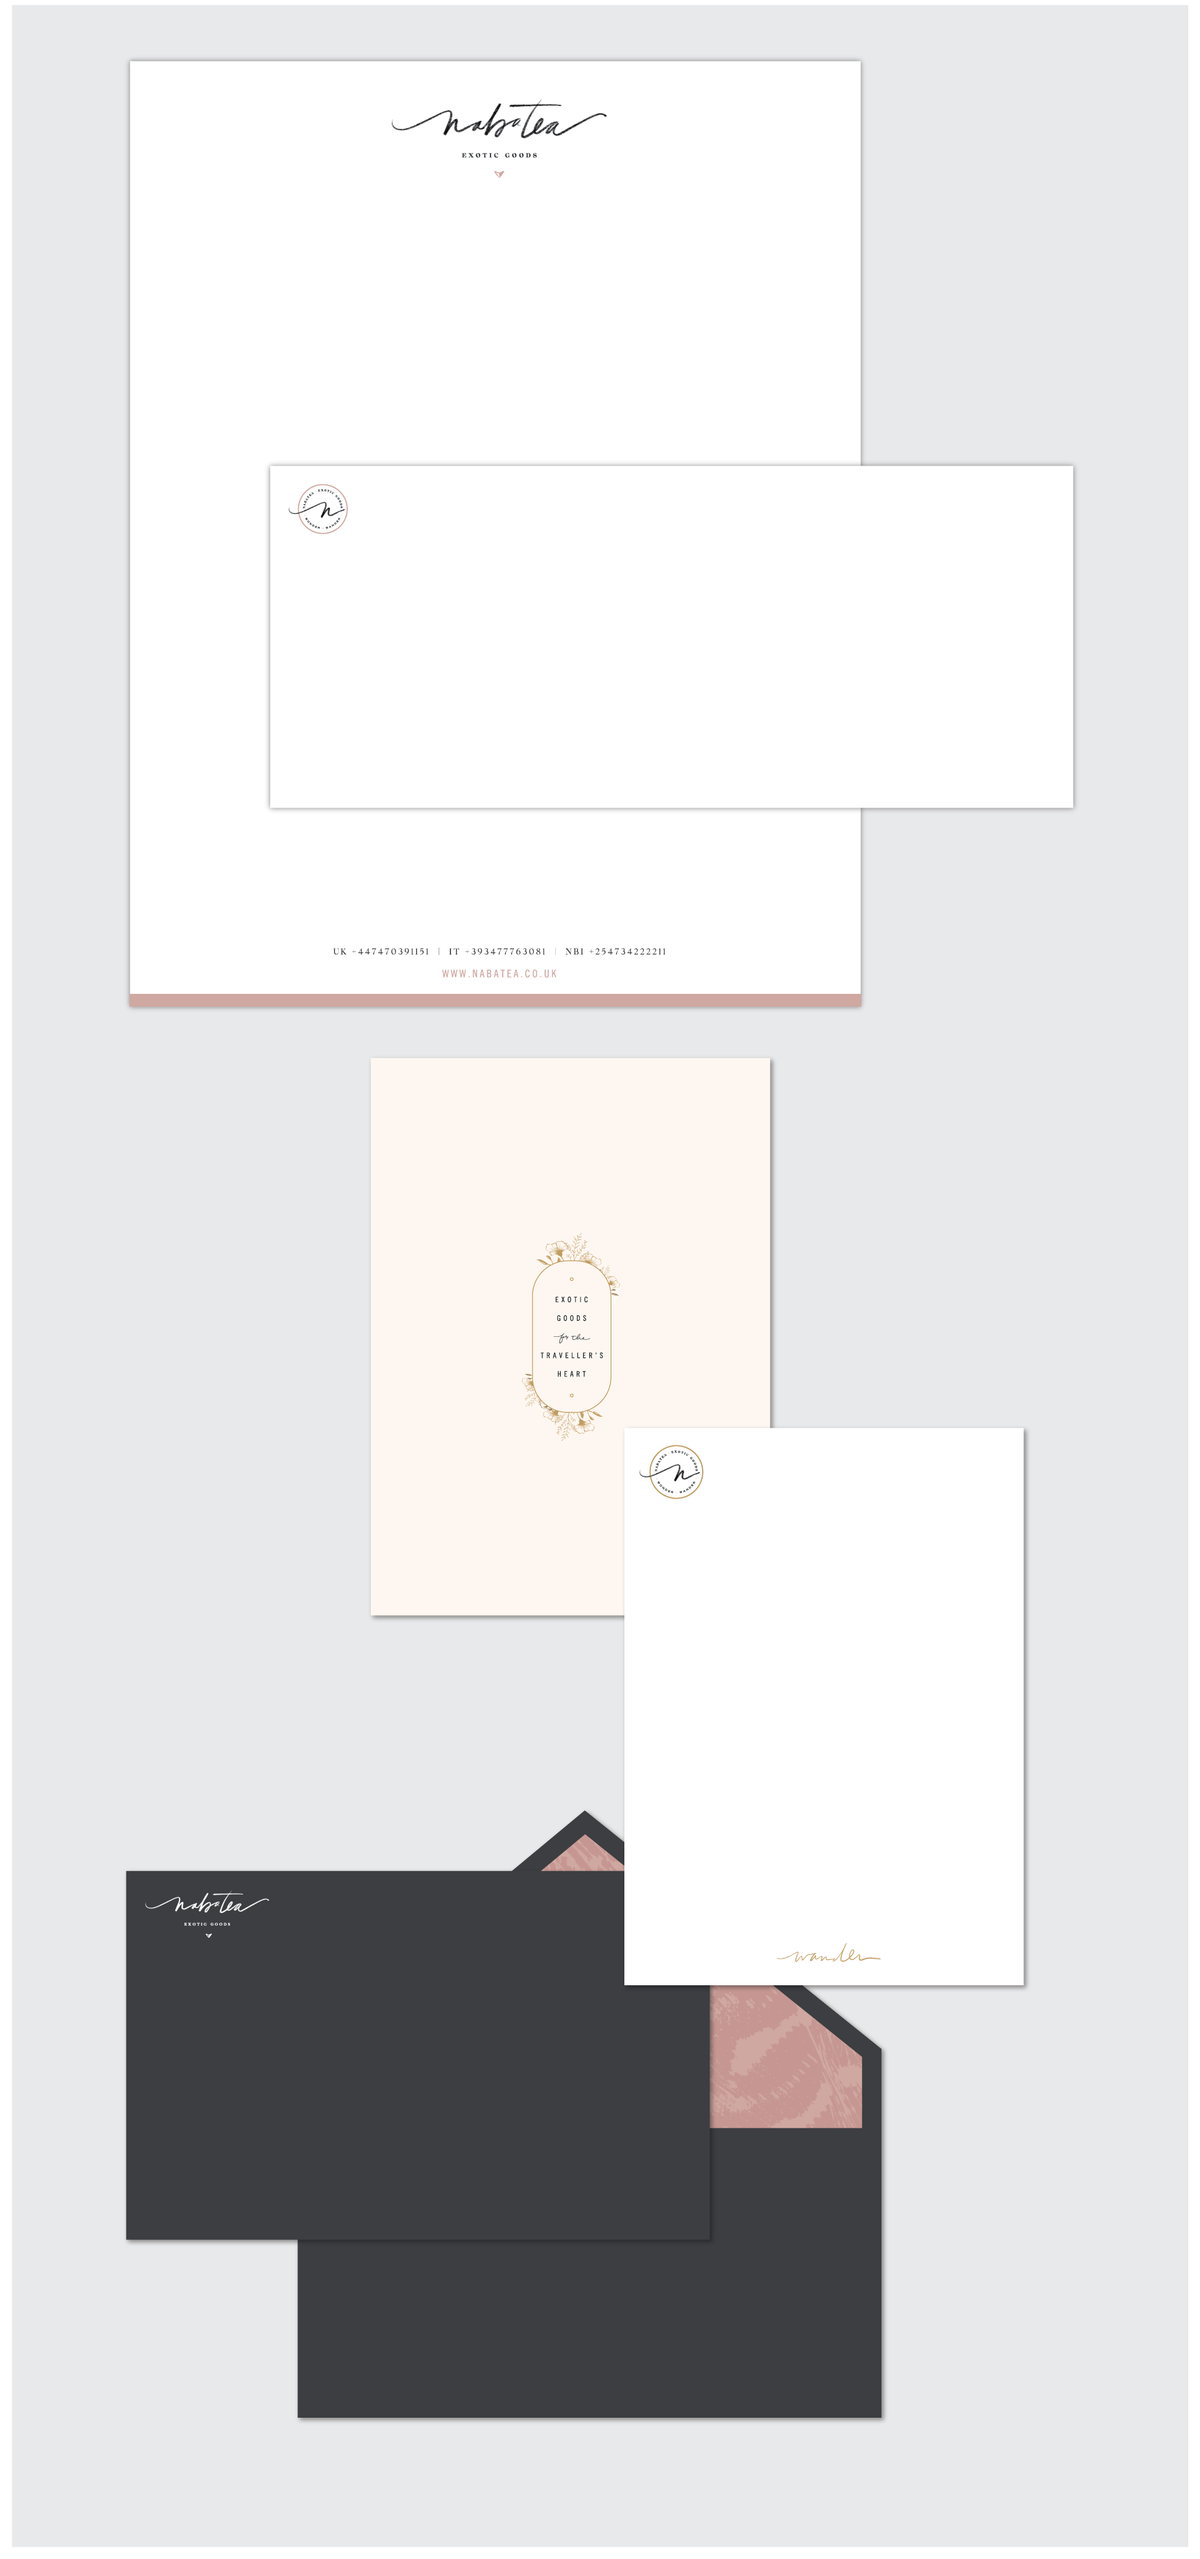 Nabatea-stationery